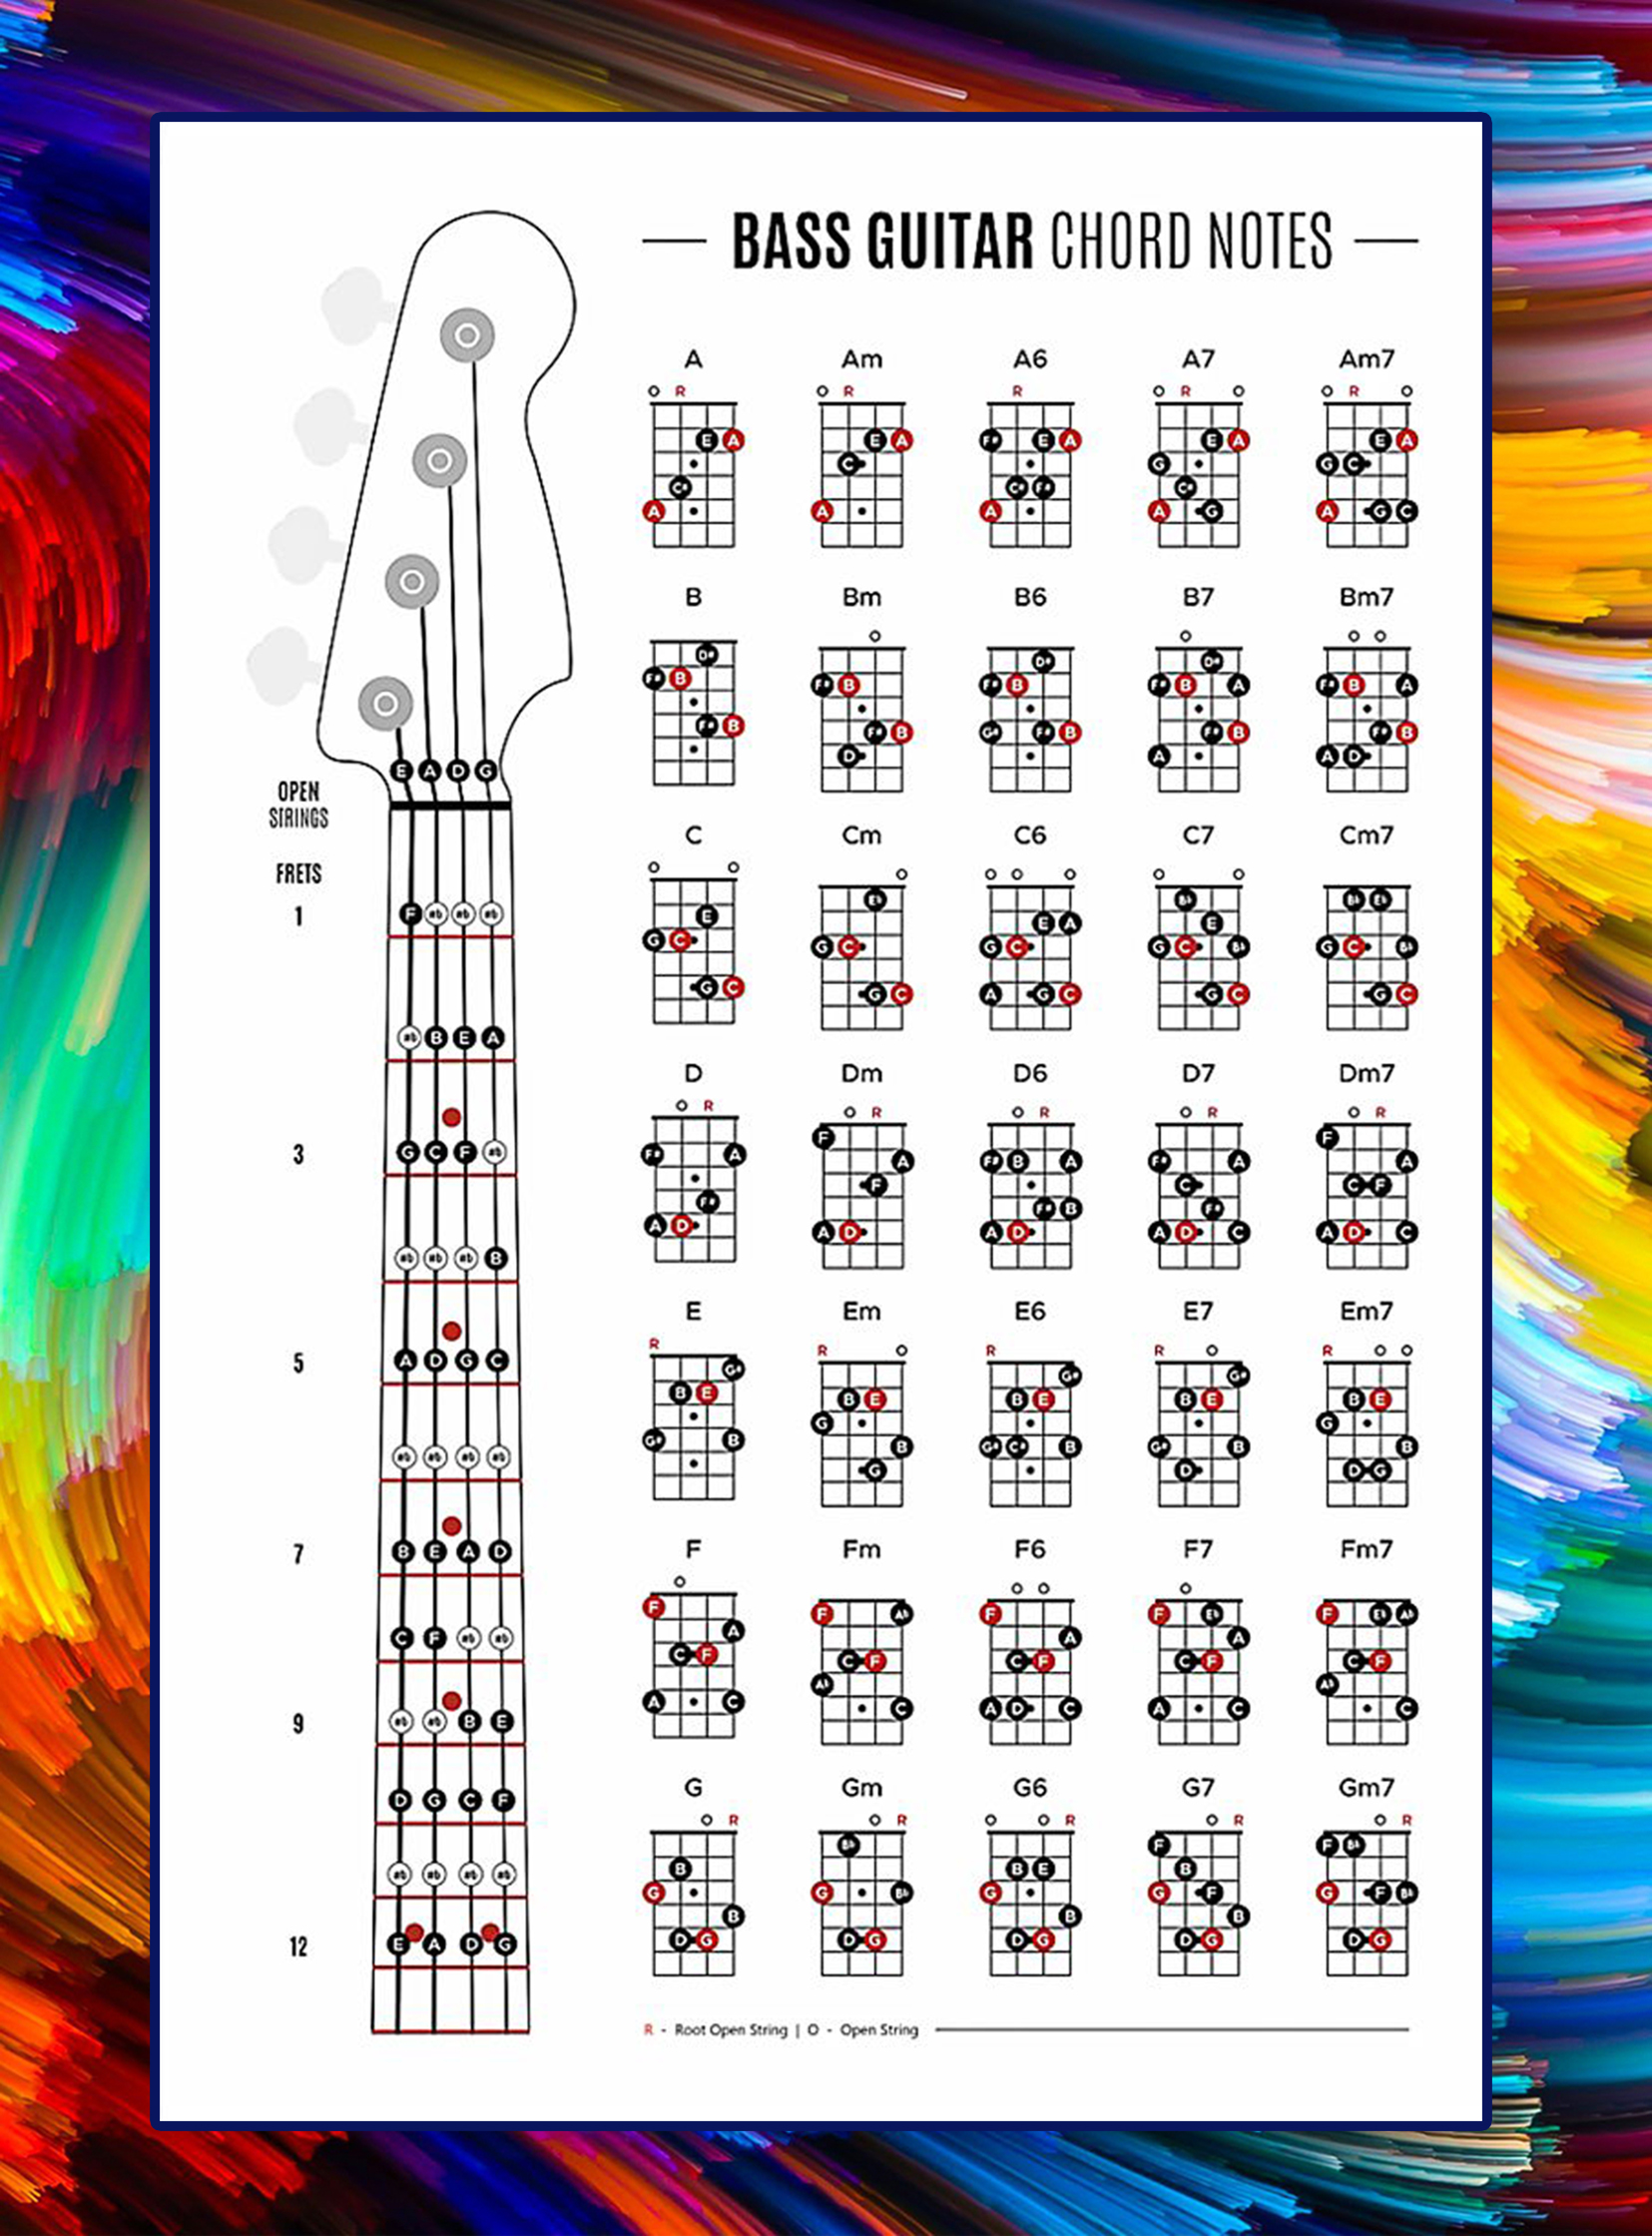 Bass guitar chord notes poster - A2